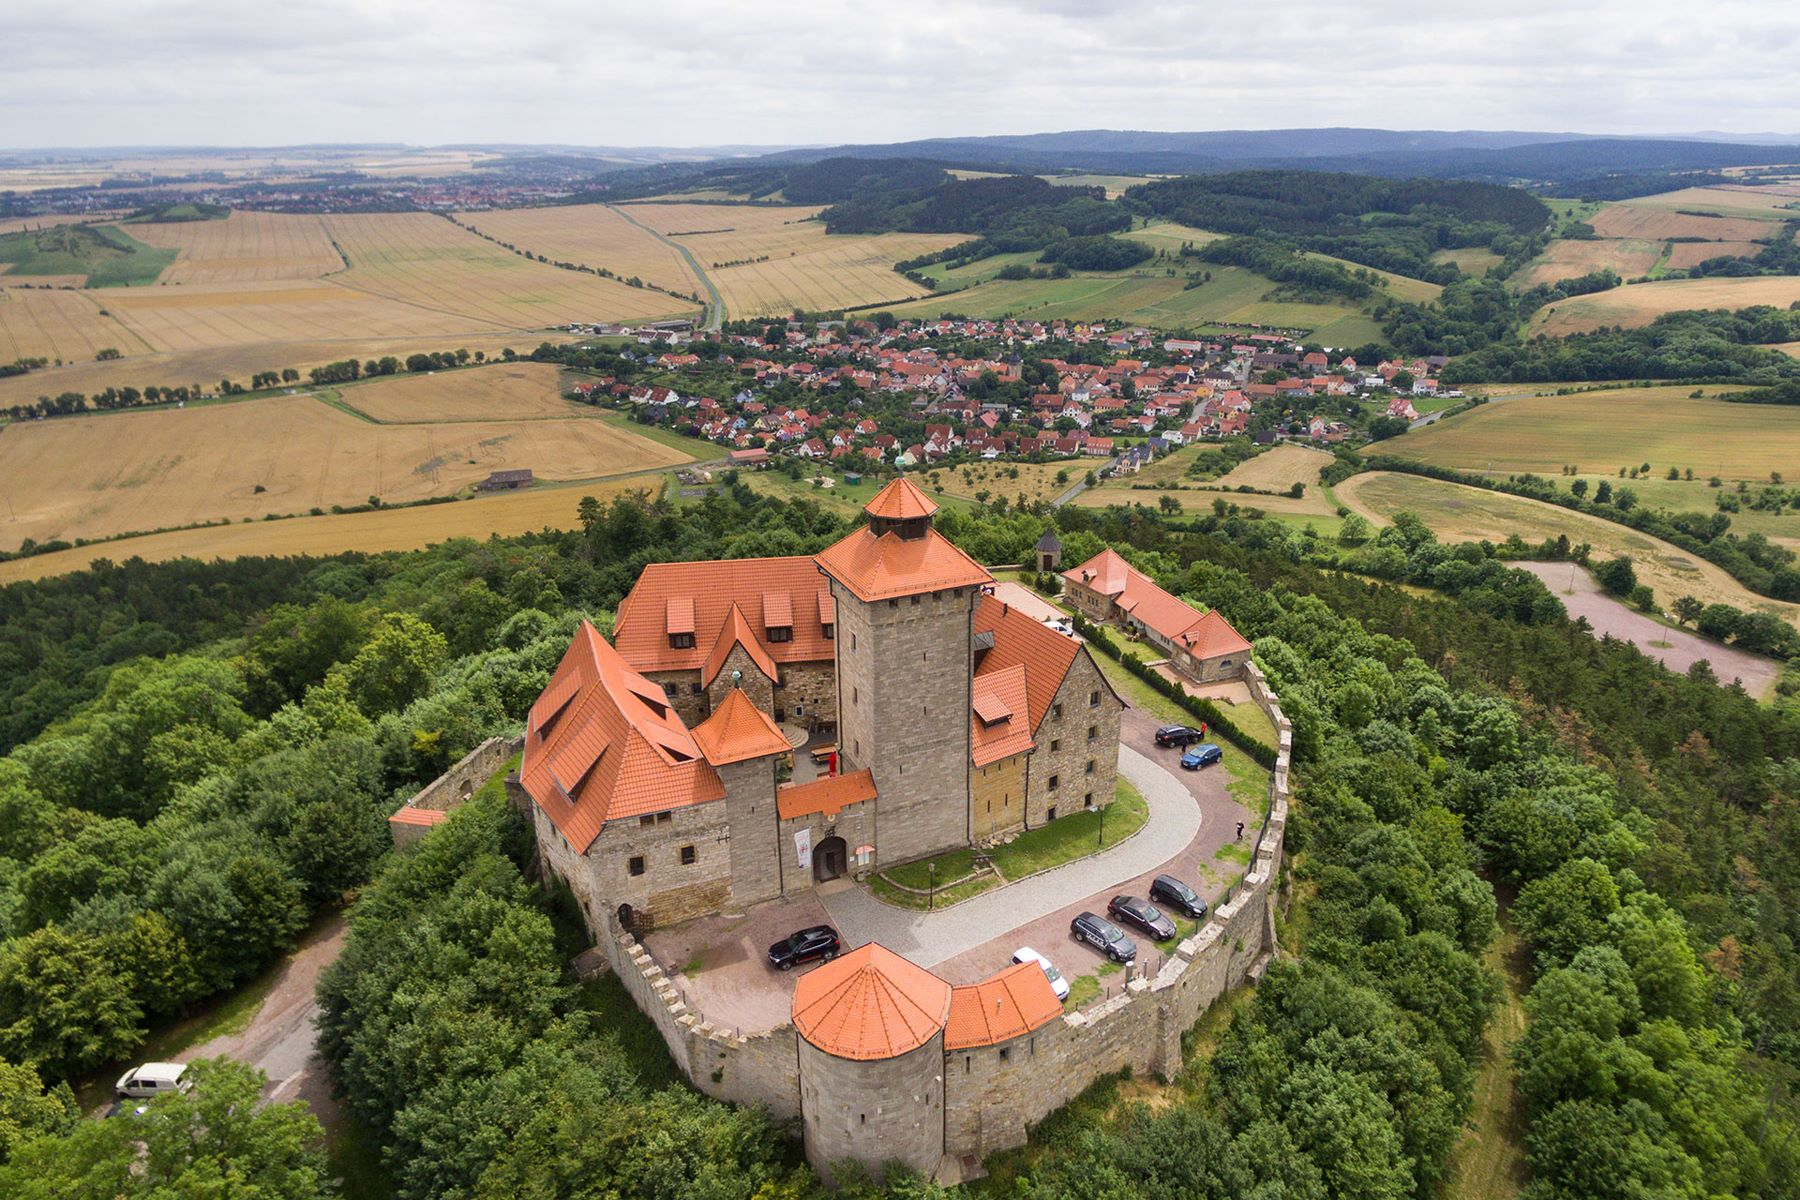 Single Family Home for Sale at Wachsenburg Castle Wachsenburg, Thüringen Other Germany, Other Areas In Germany, 99310 Germany